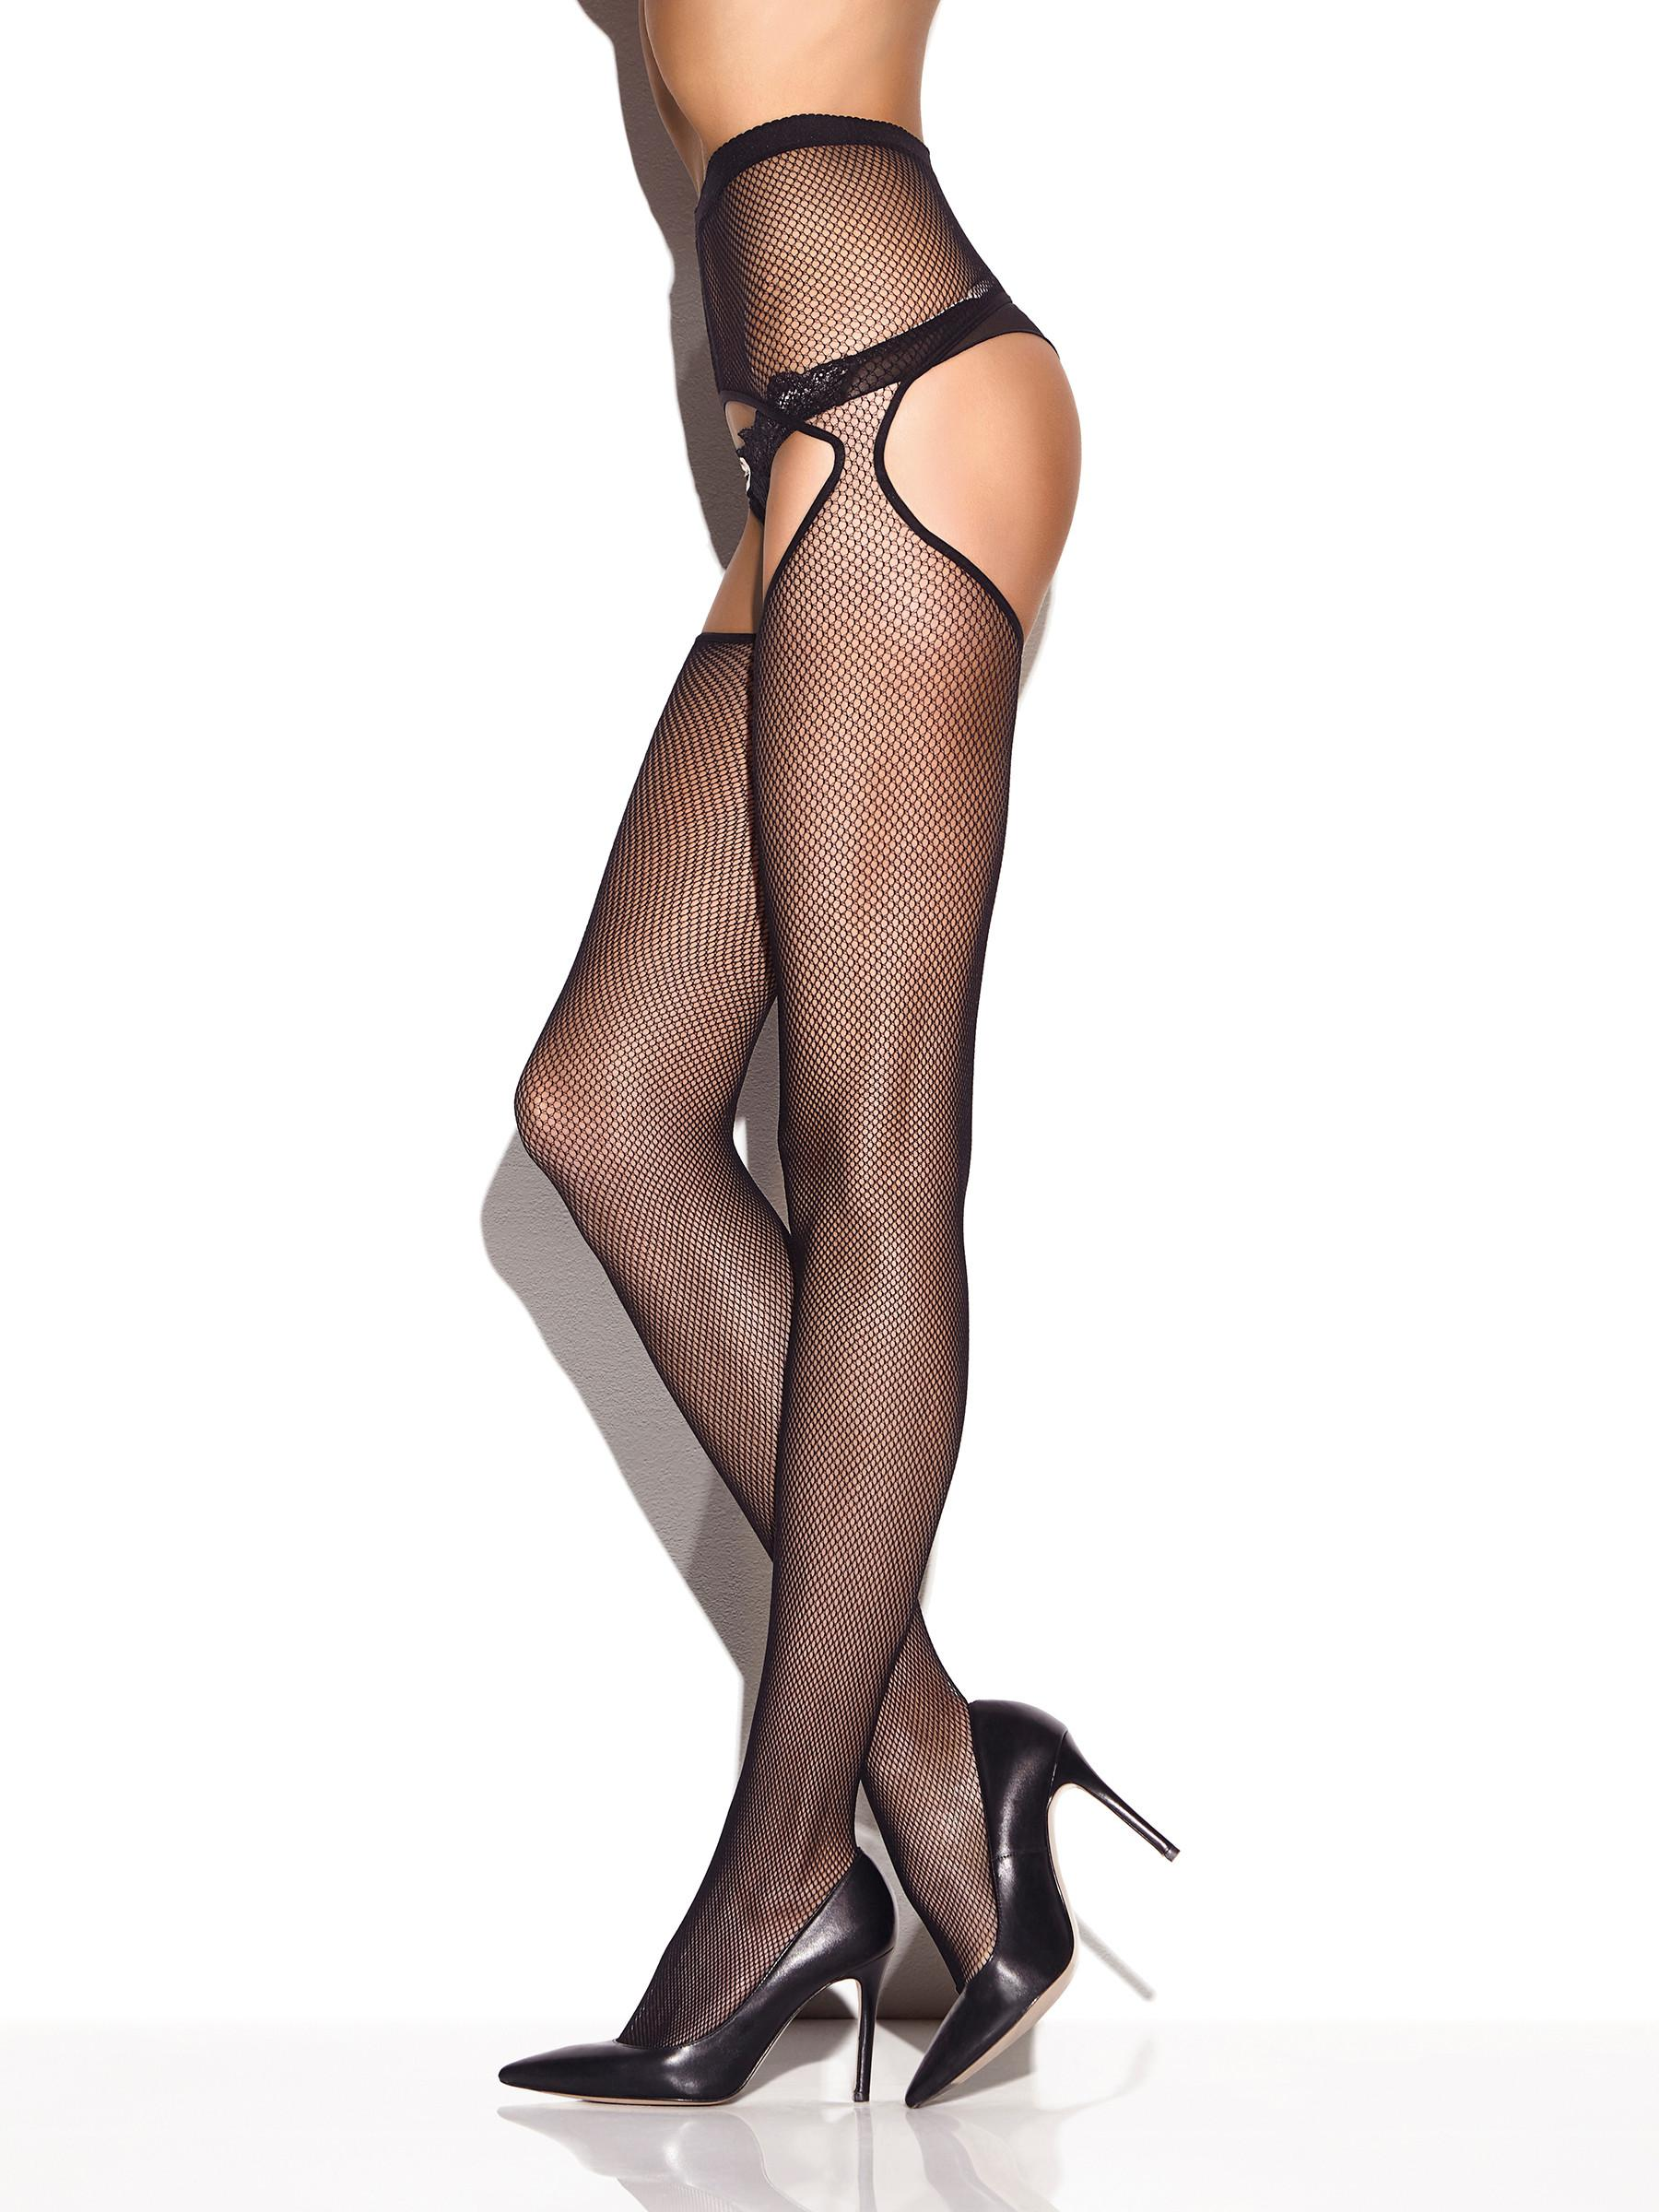 Ann Summers Womens Crotchless Fishnet Tights Bumless Sexy Lingerie Hosiery